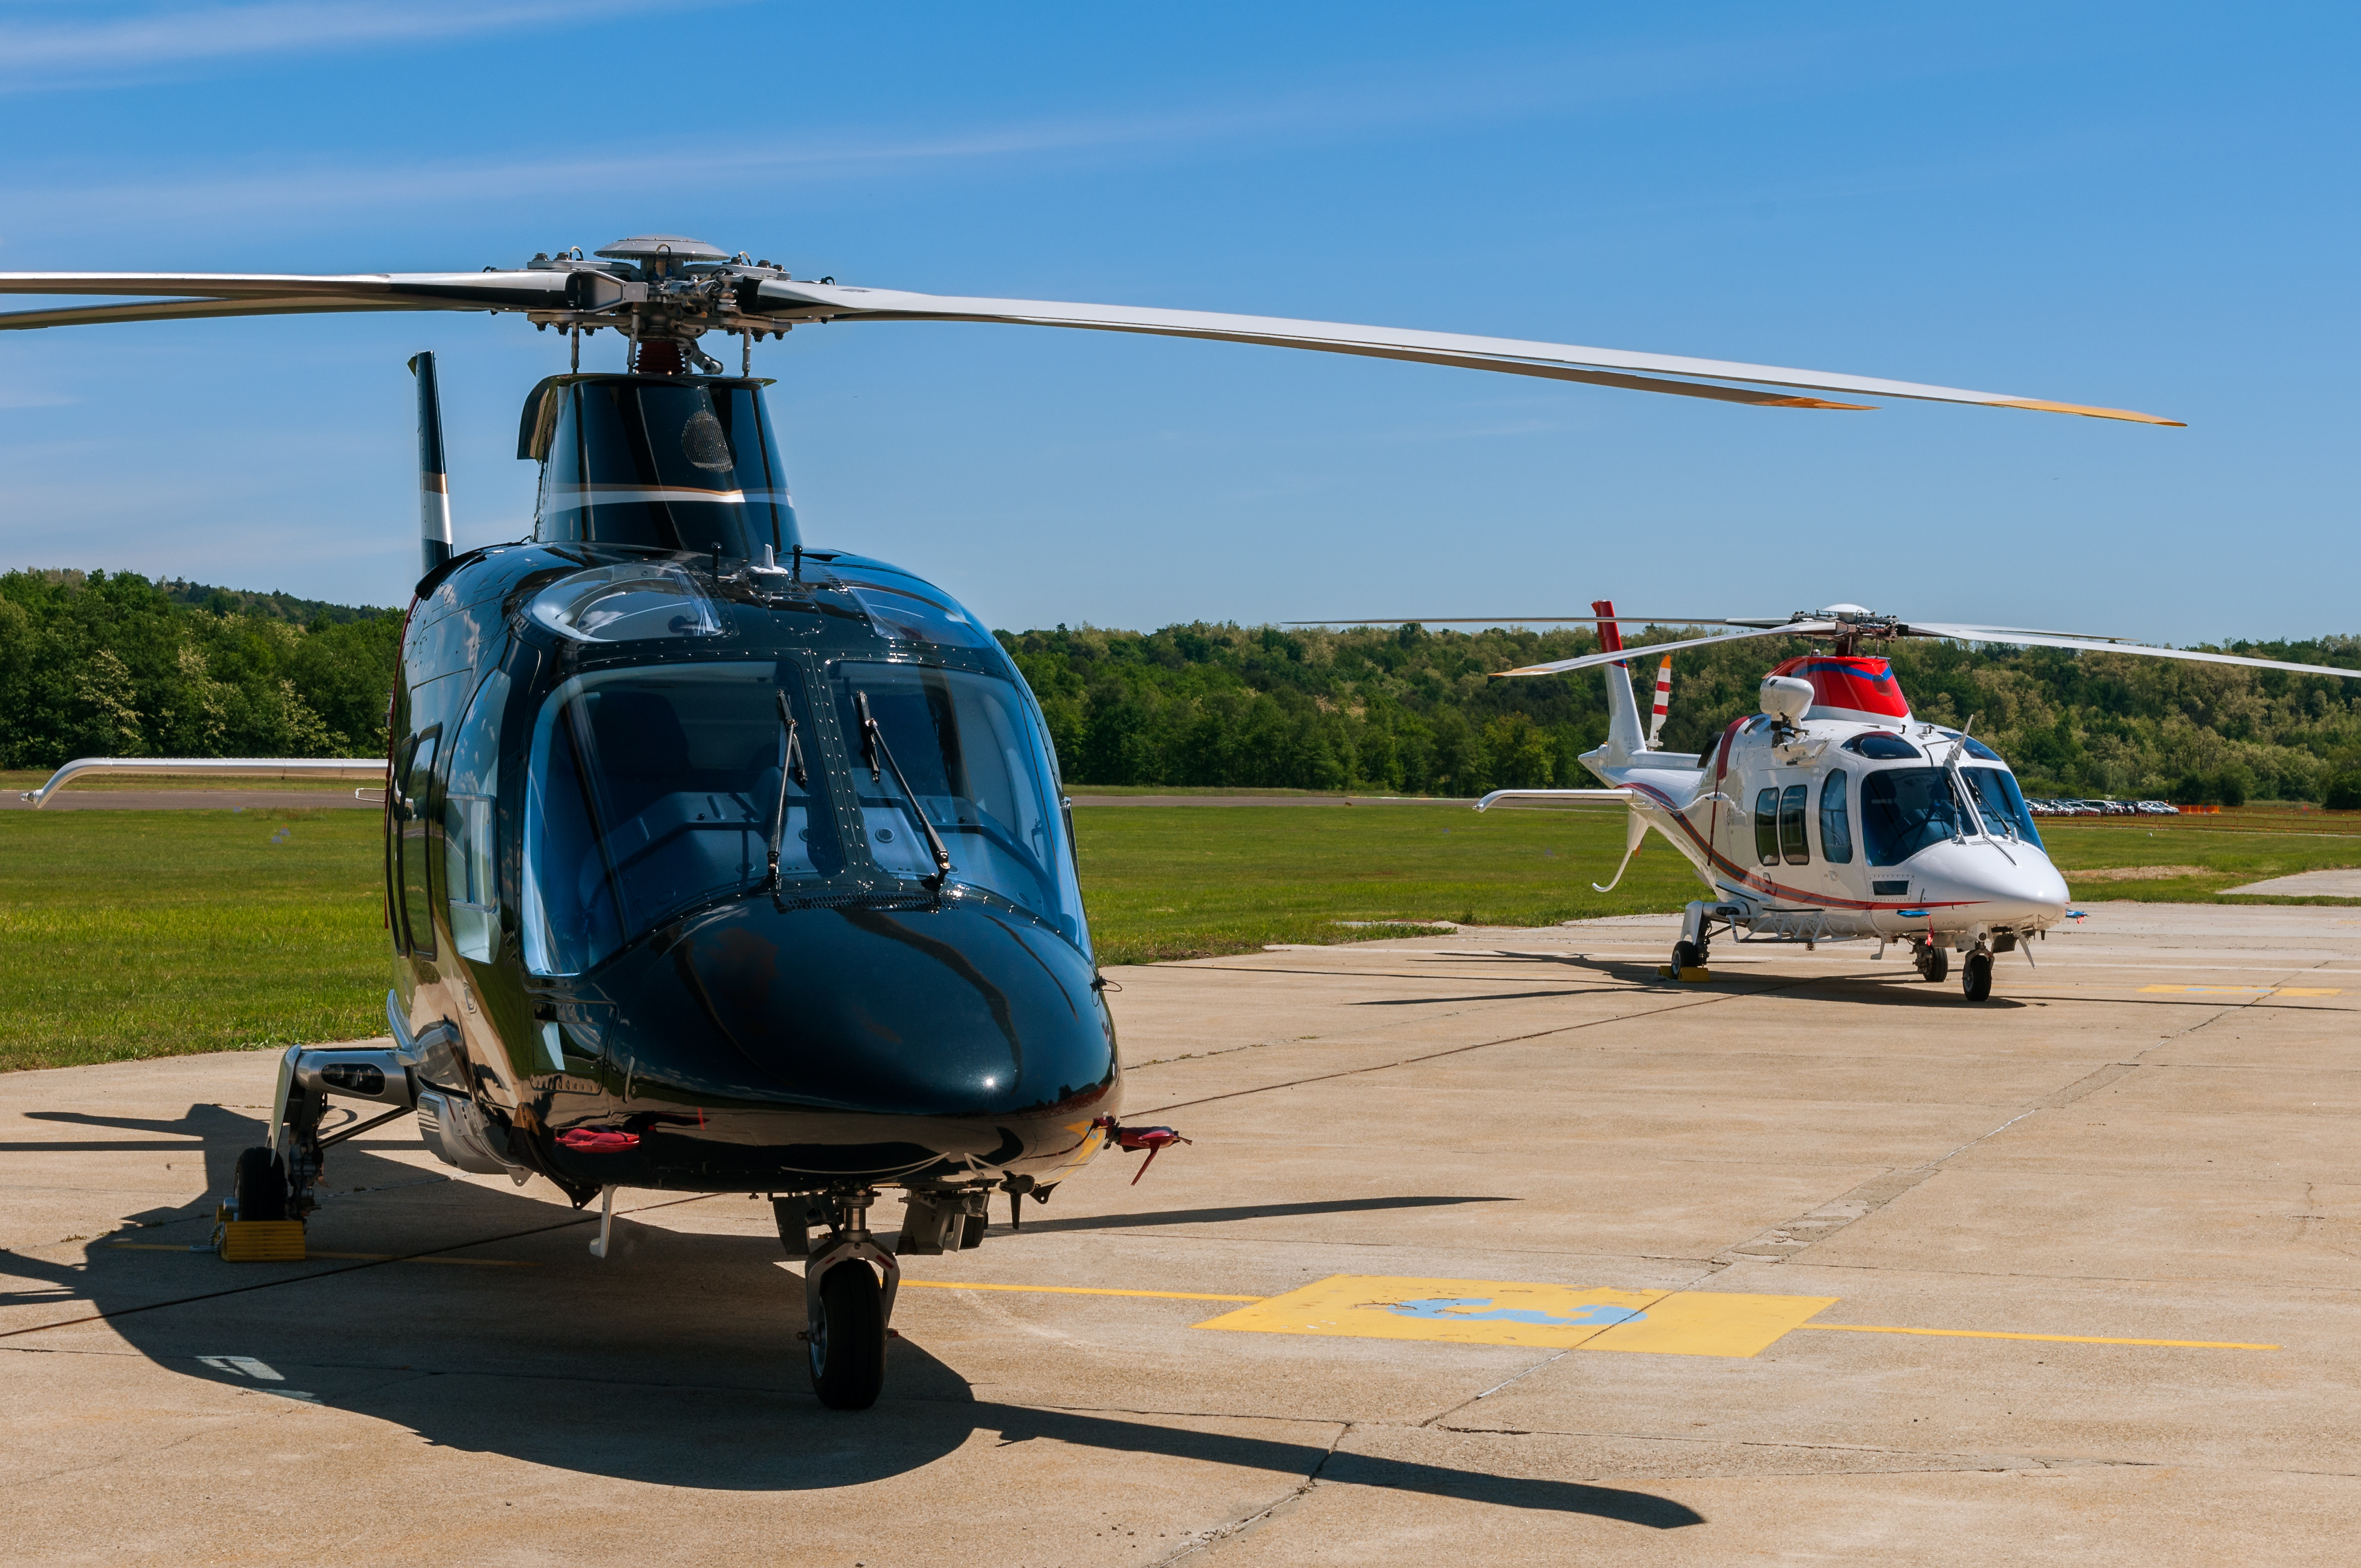 Two helicopters on a runway